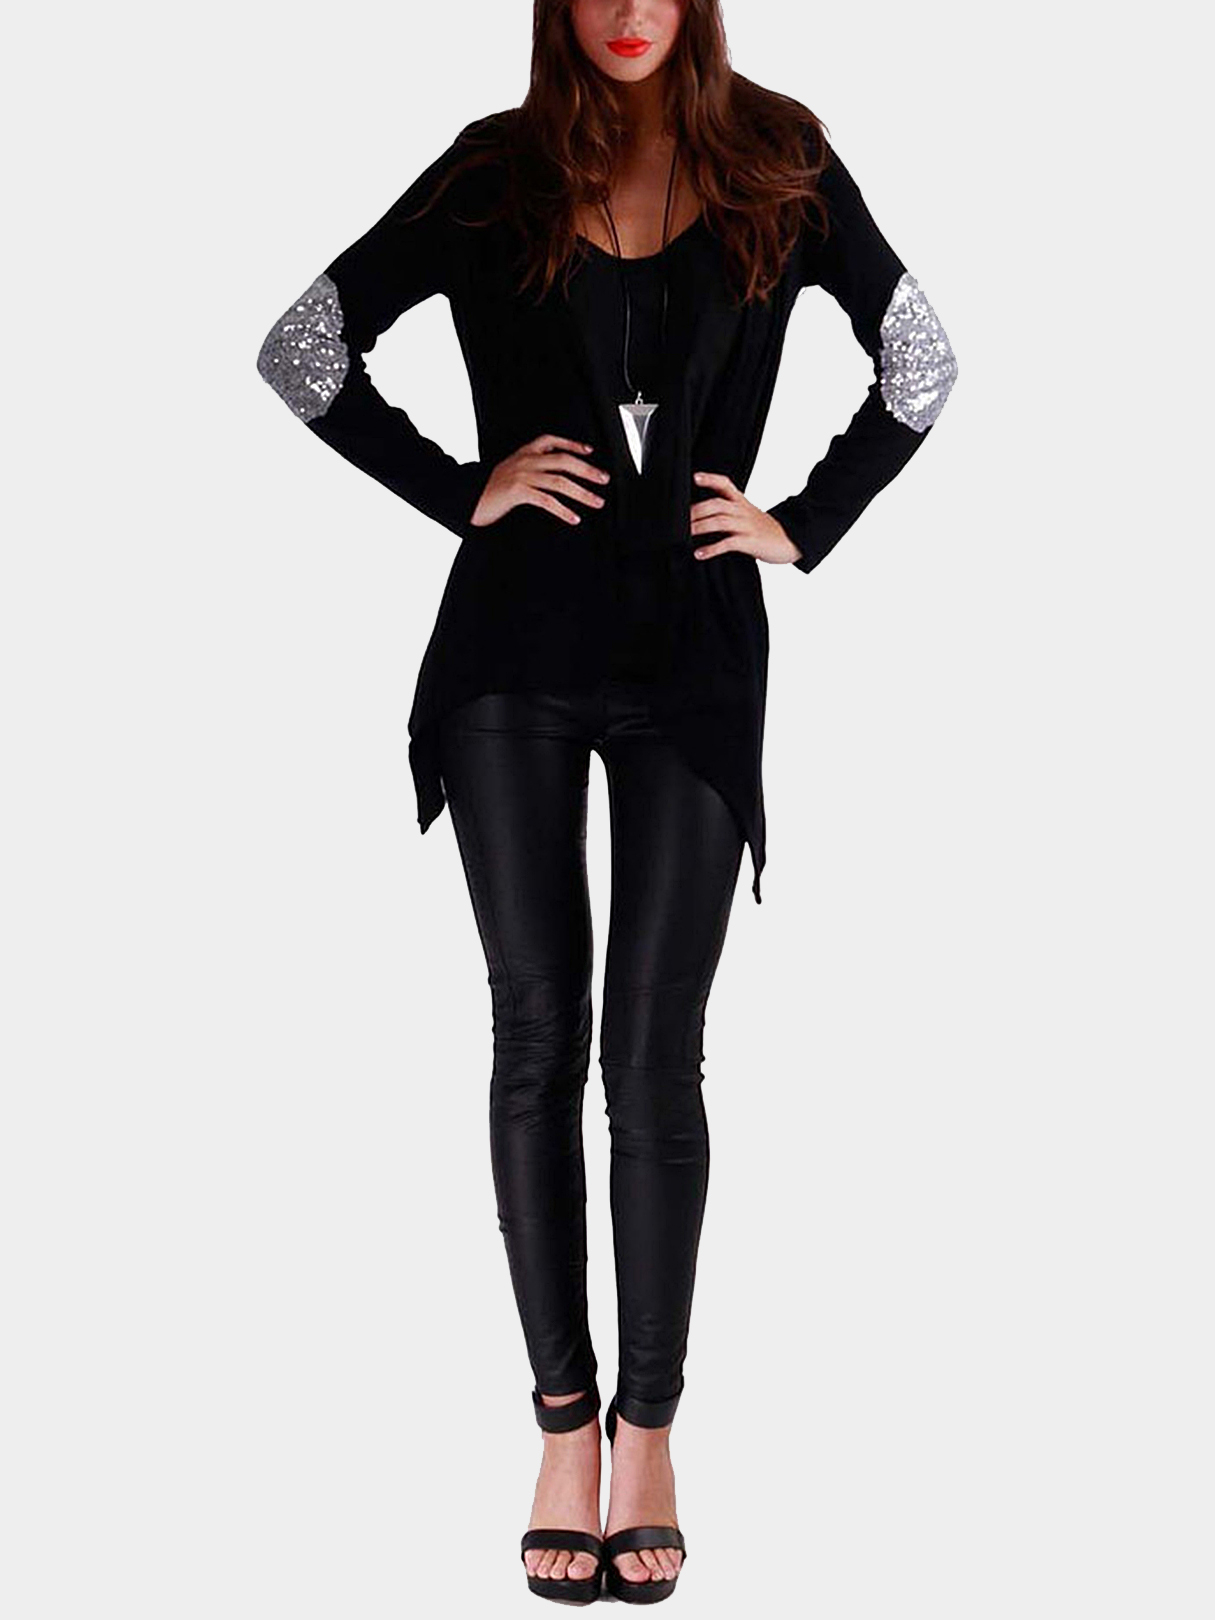 Black Open Front Thin Cardigan with Metallic Glitzy Details